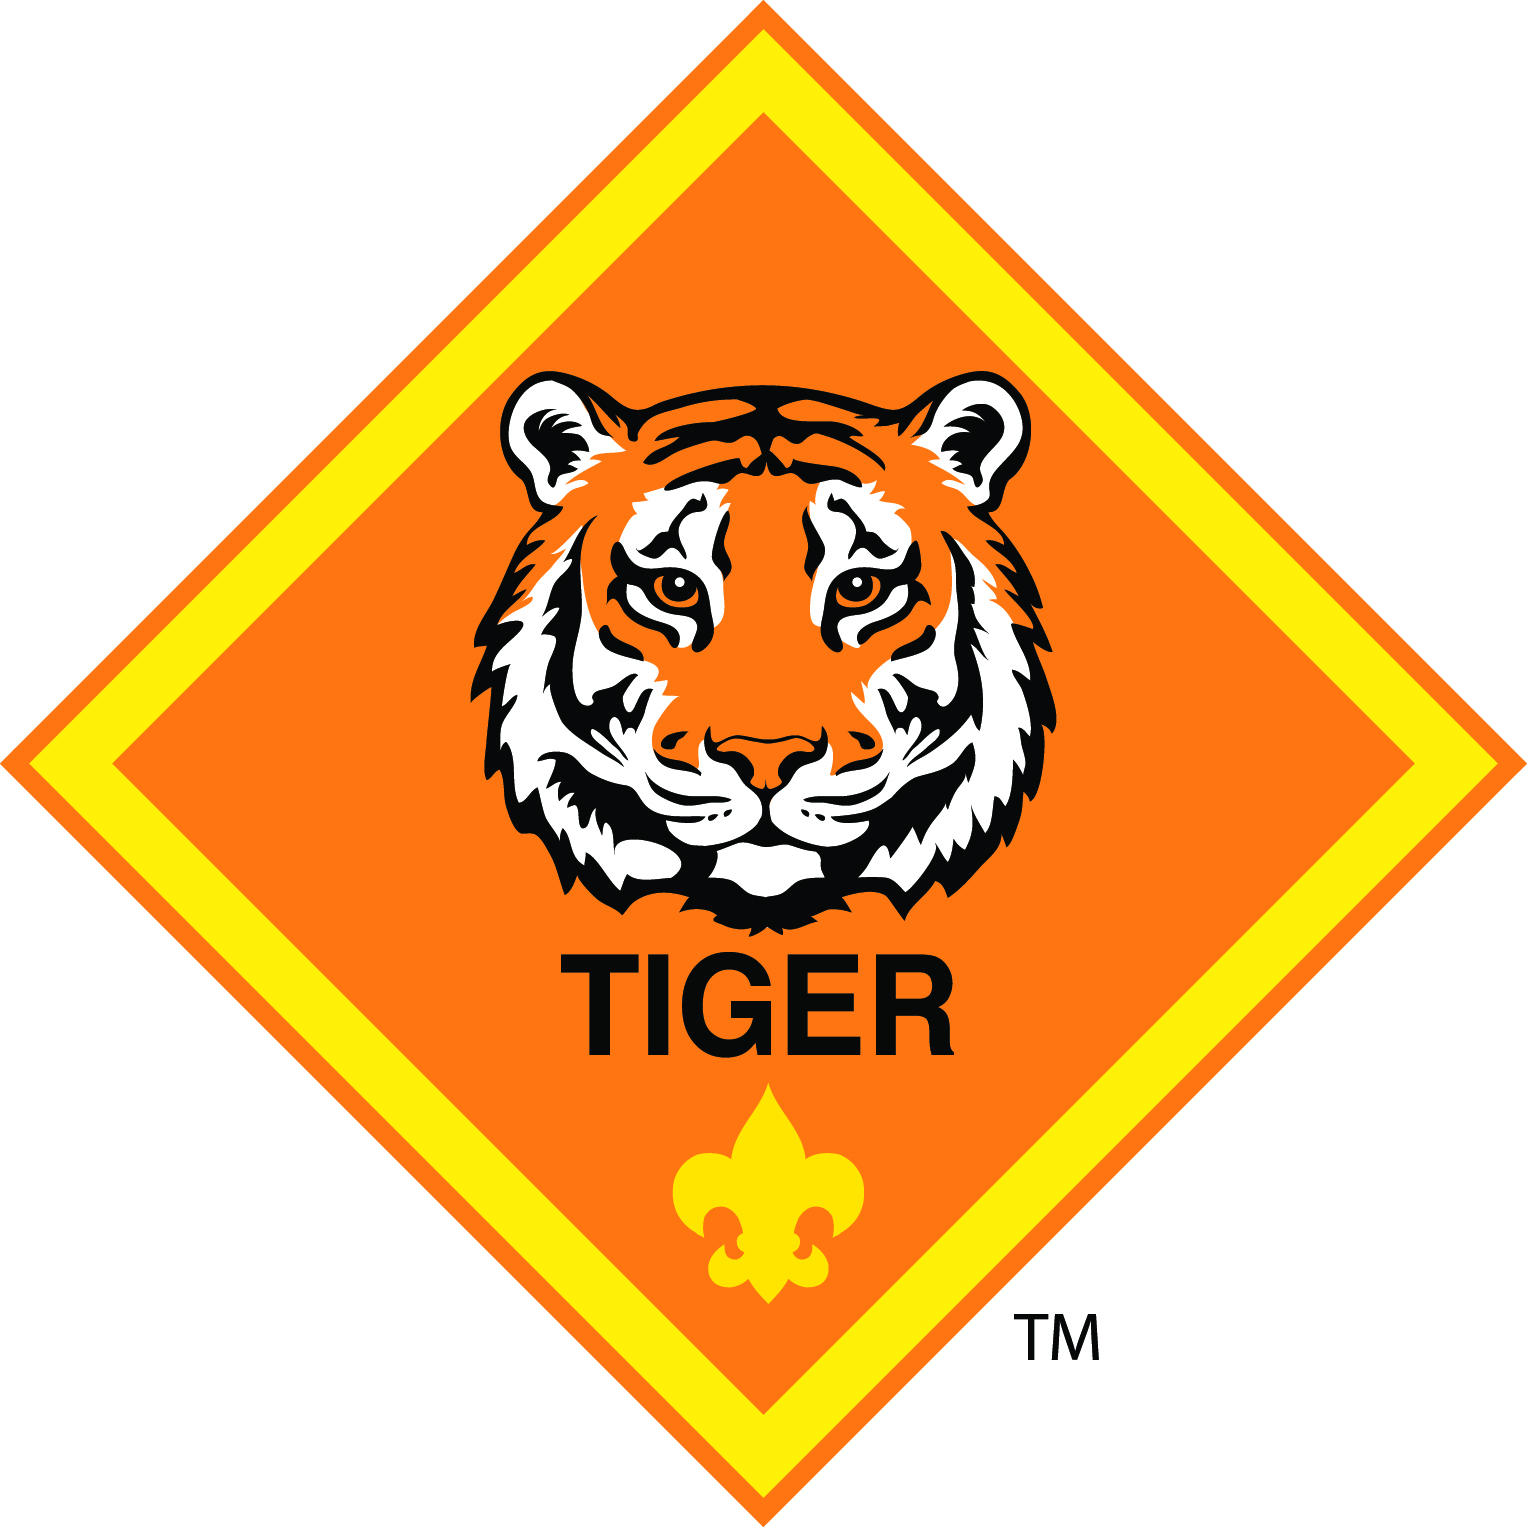 https://i2.wp.com/www.scouting.org/filestore/marketing/Brand/CubScouts/Ranks/Tiger%20Rank.jpeg